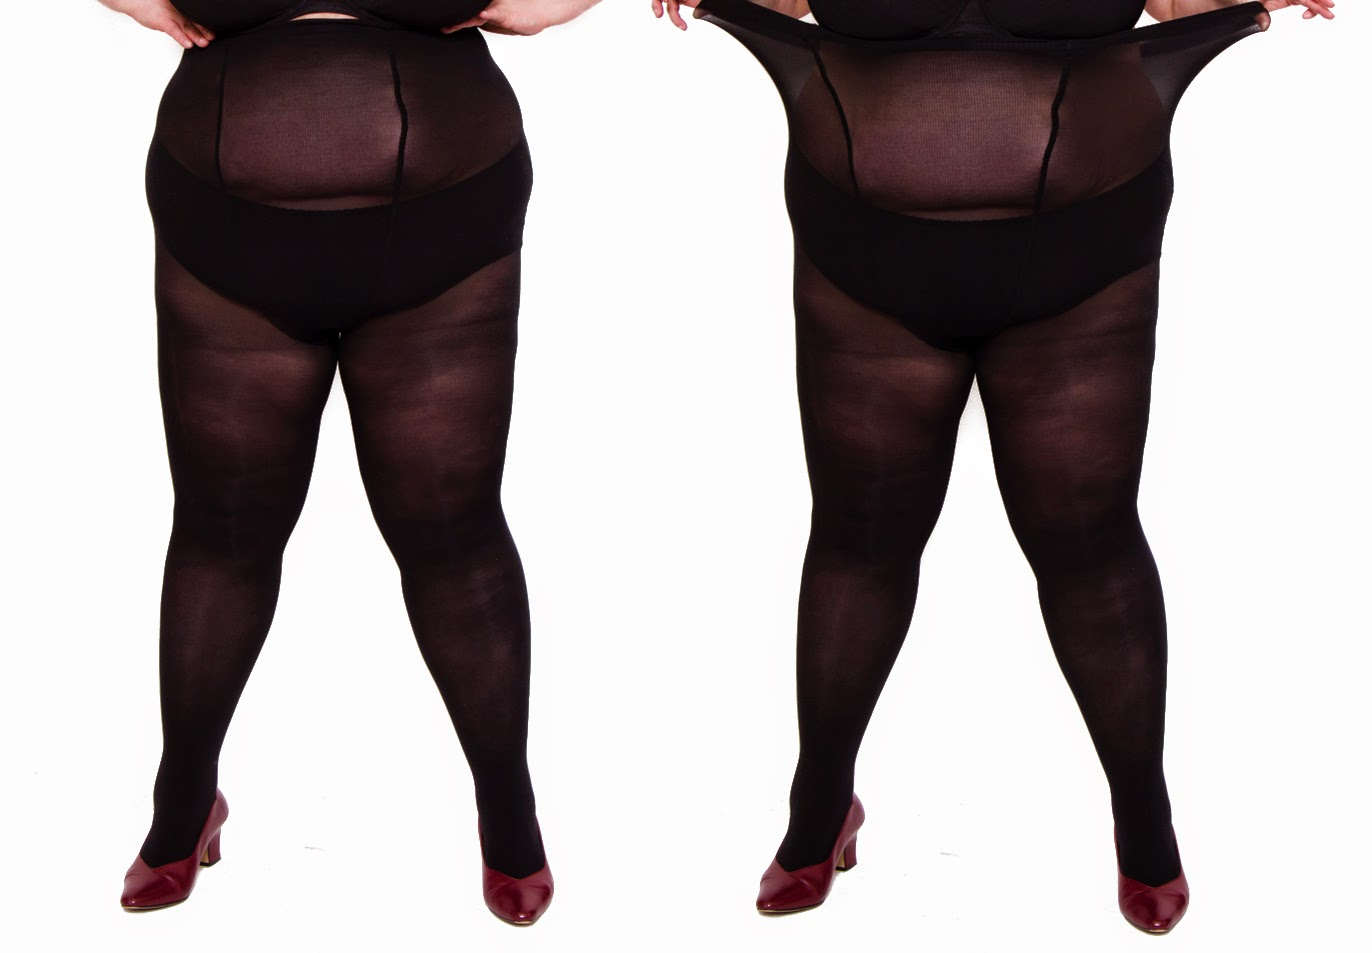 222193502e0 Stocking Fillers - Plus Size Tights Which Actually Fit From The Big ...